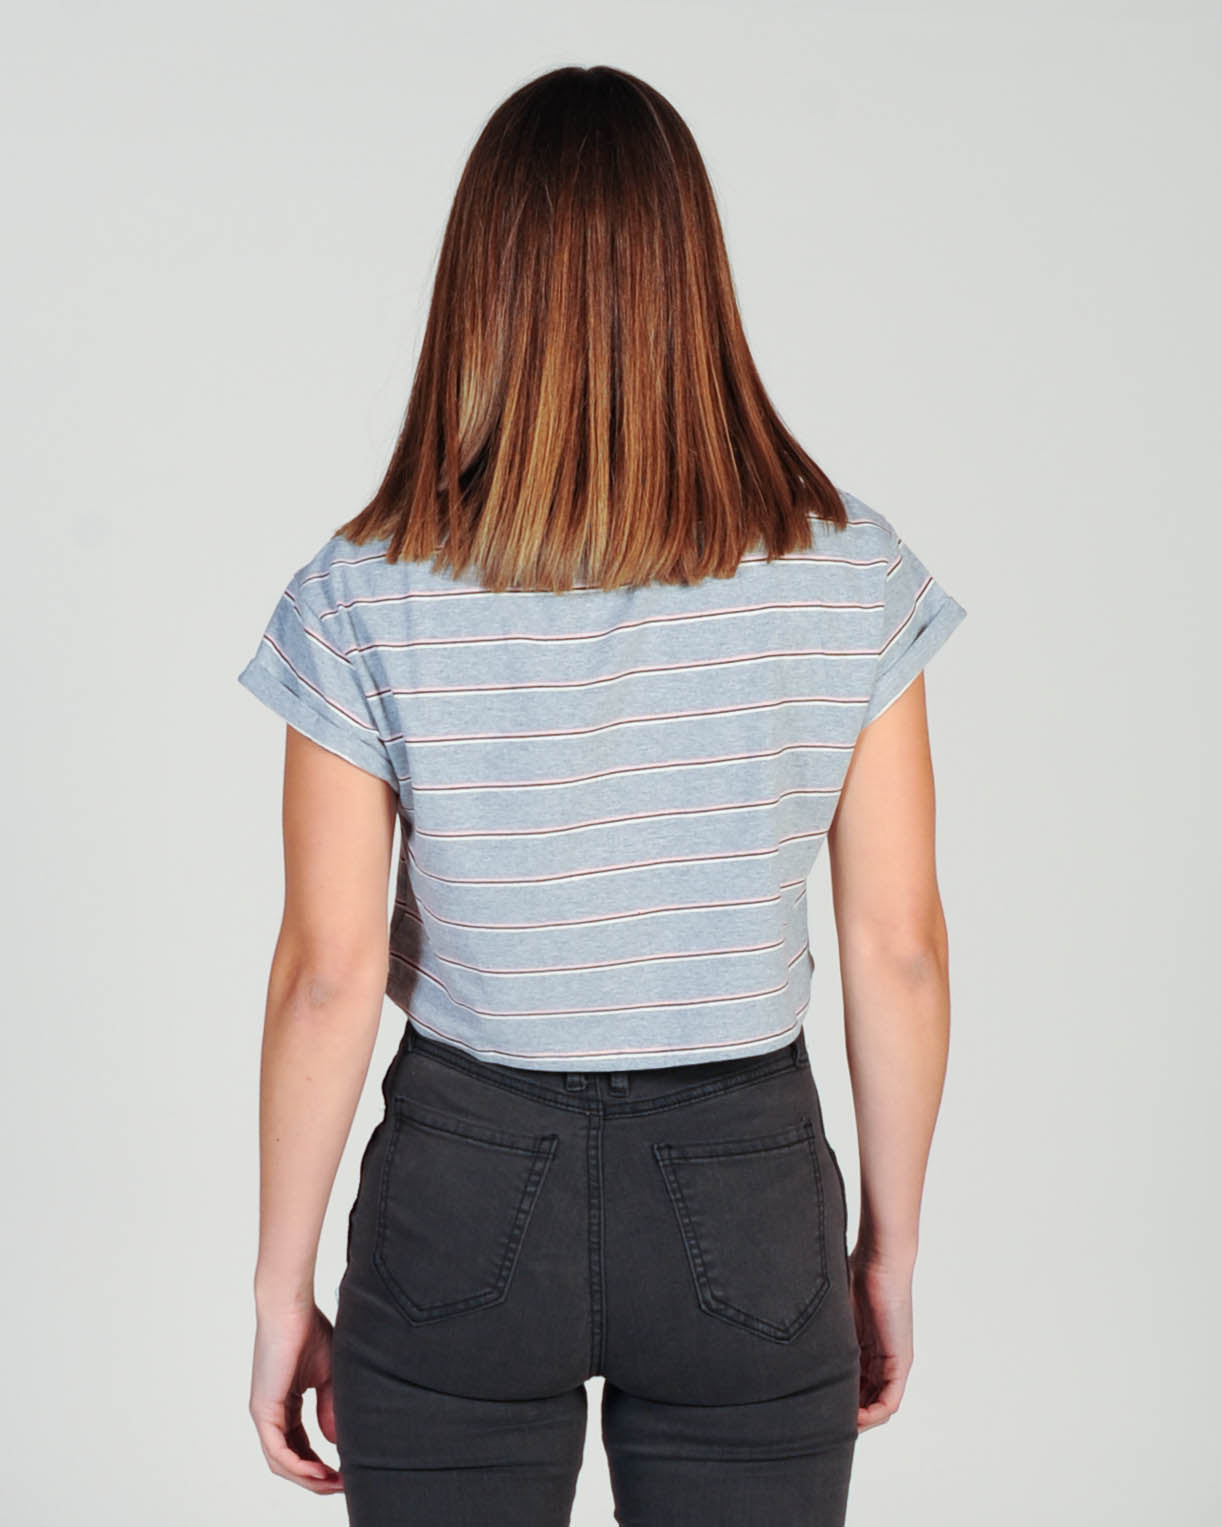 Silent Theory Bite The Bullet Crop Stripe Top - Gry/Pin/Whi/Blk